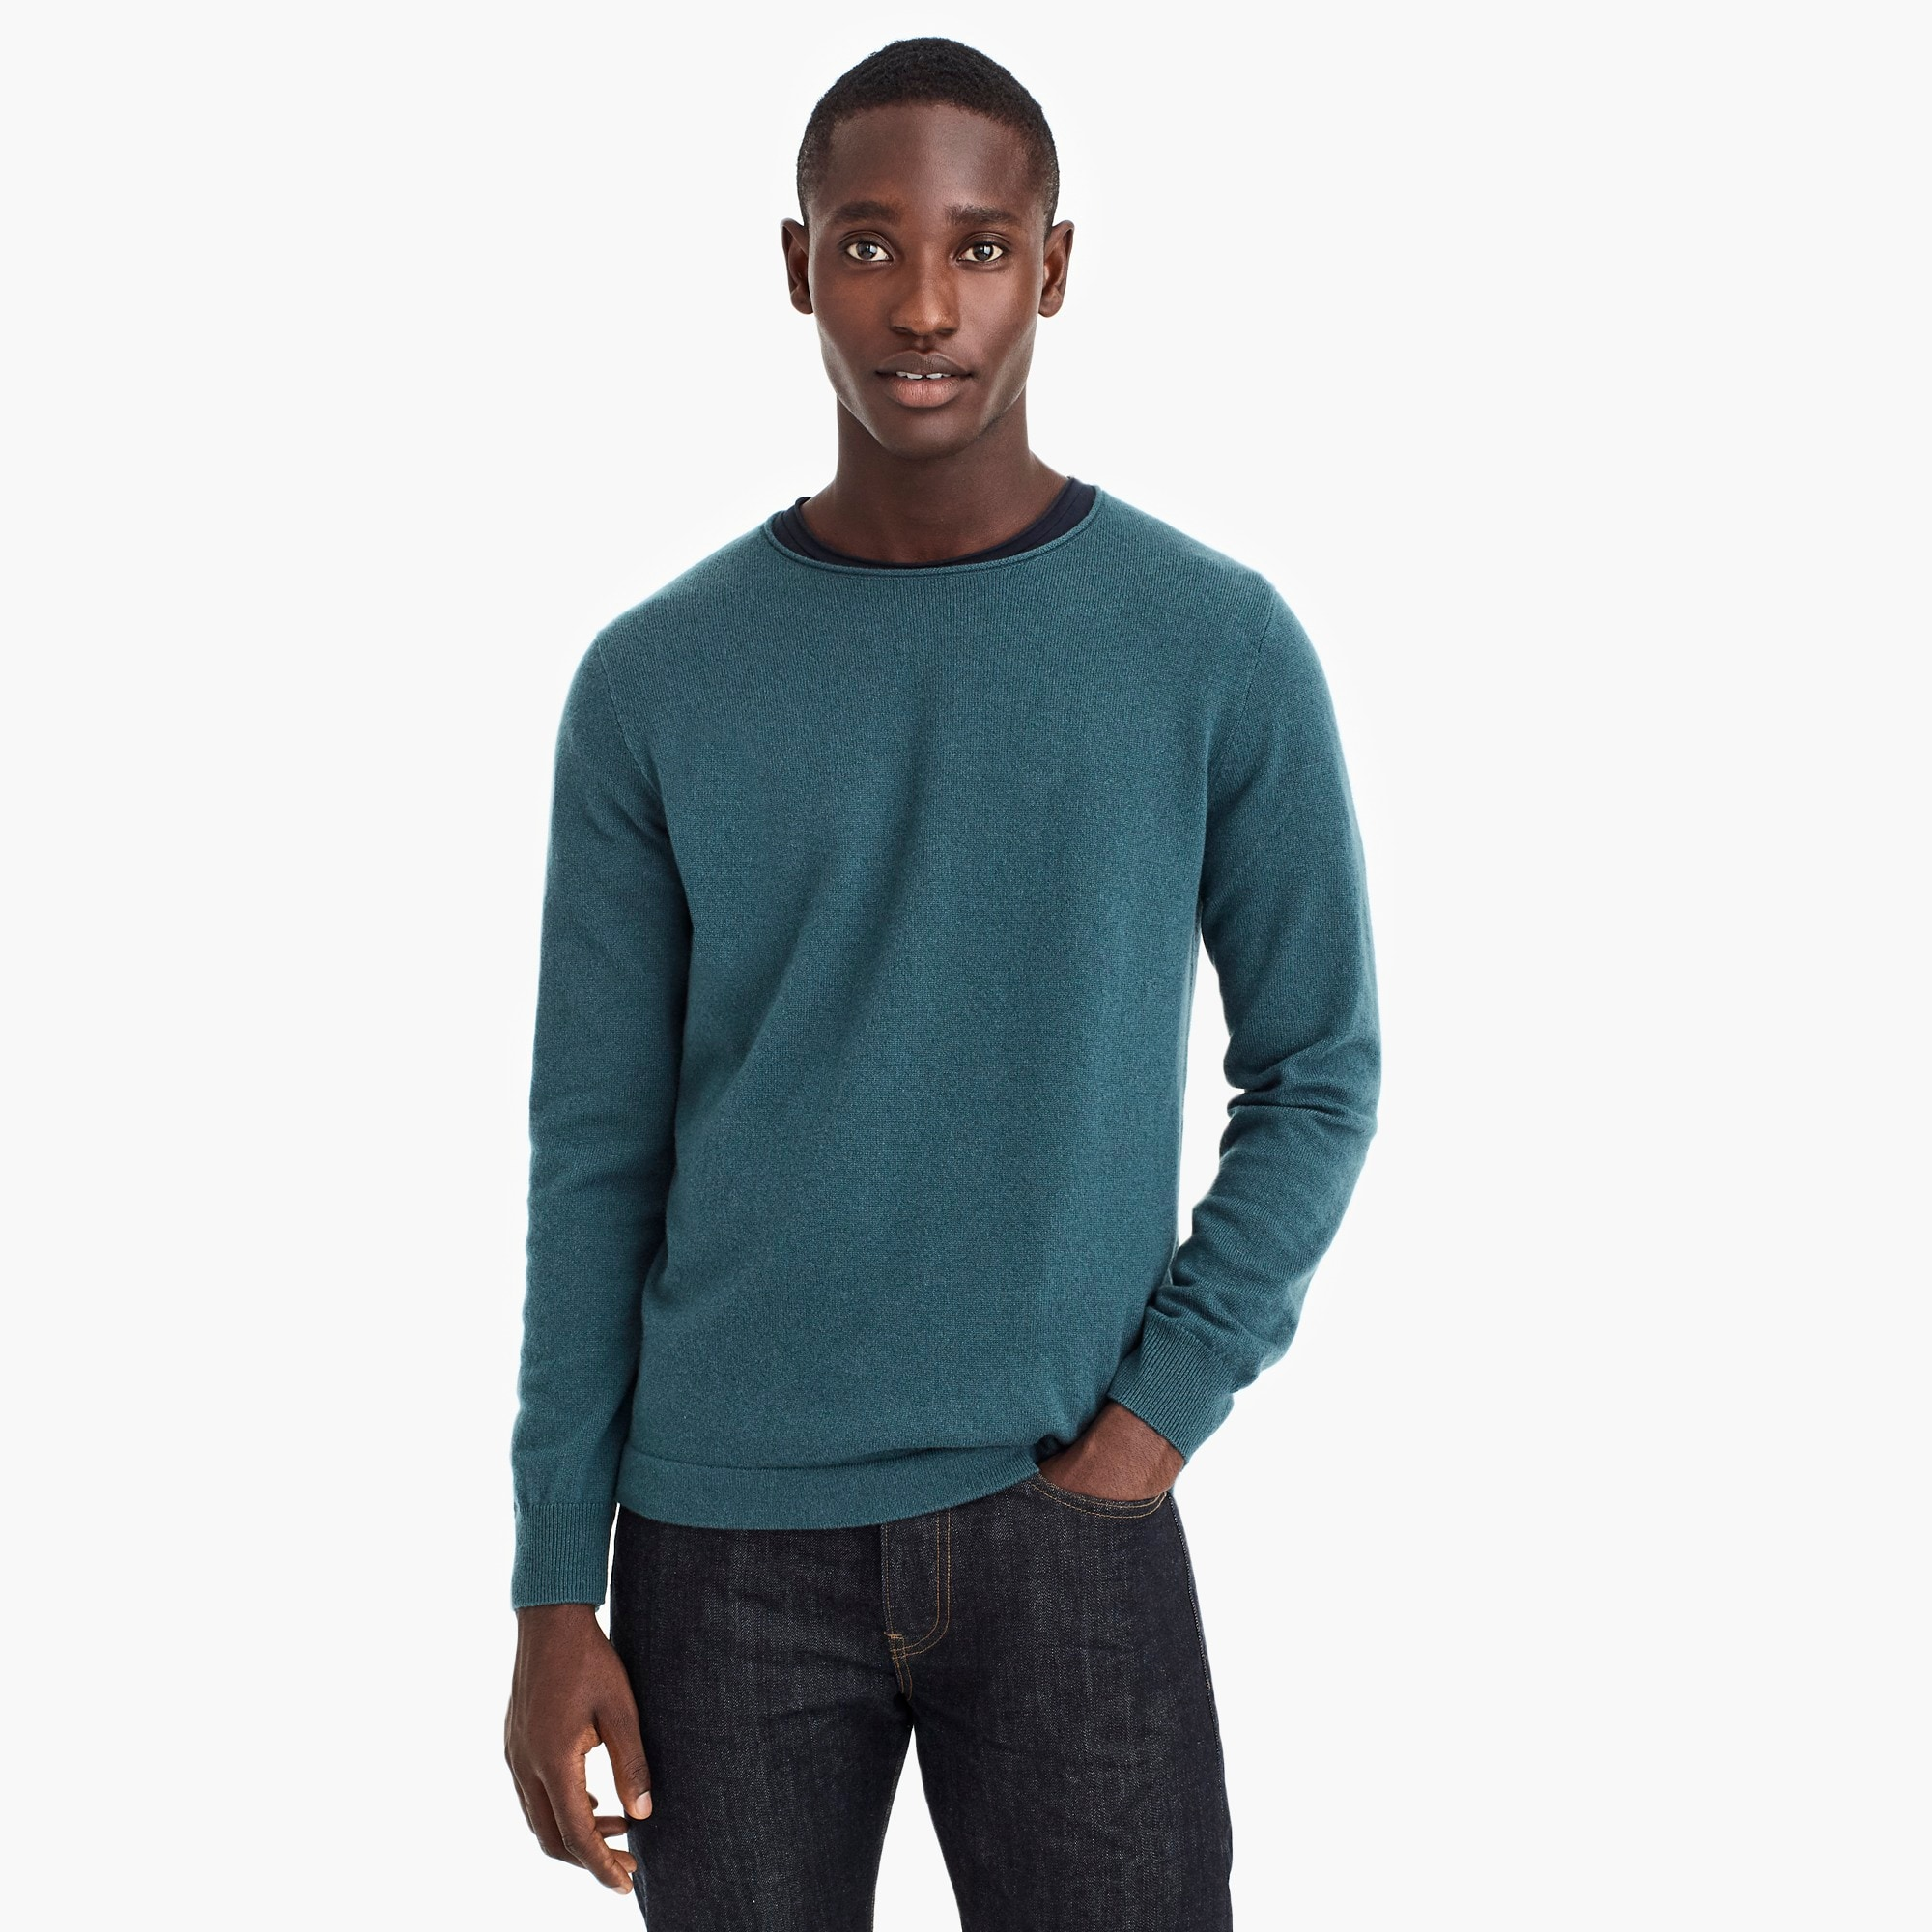 mens Destination cashmere crewneck sweater